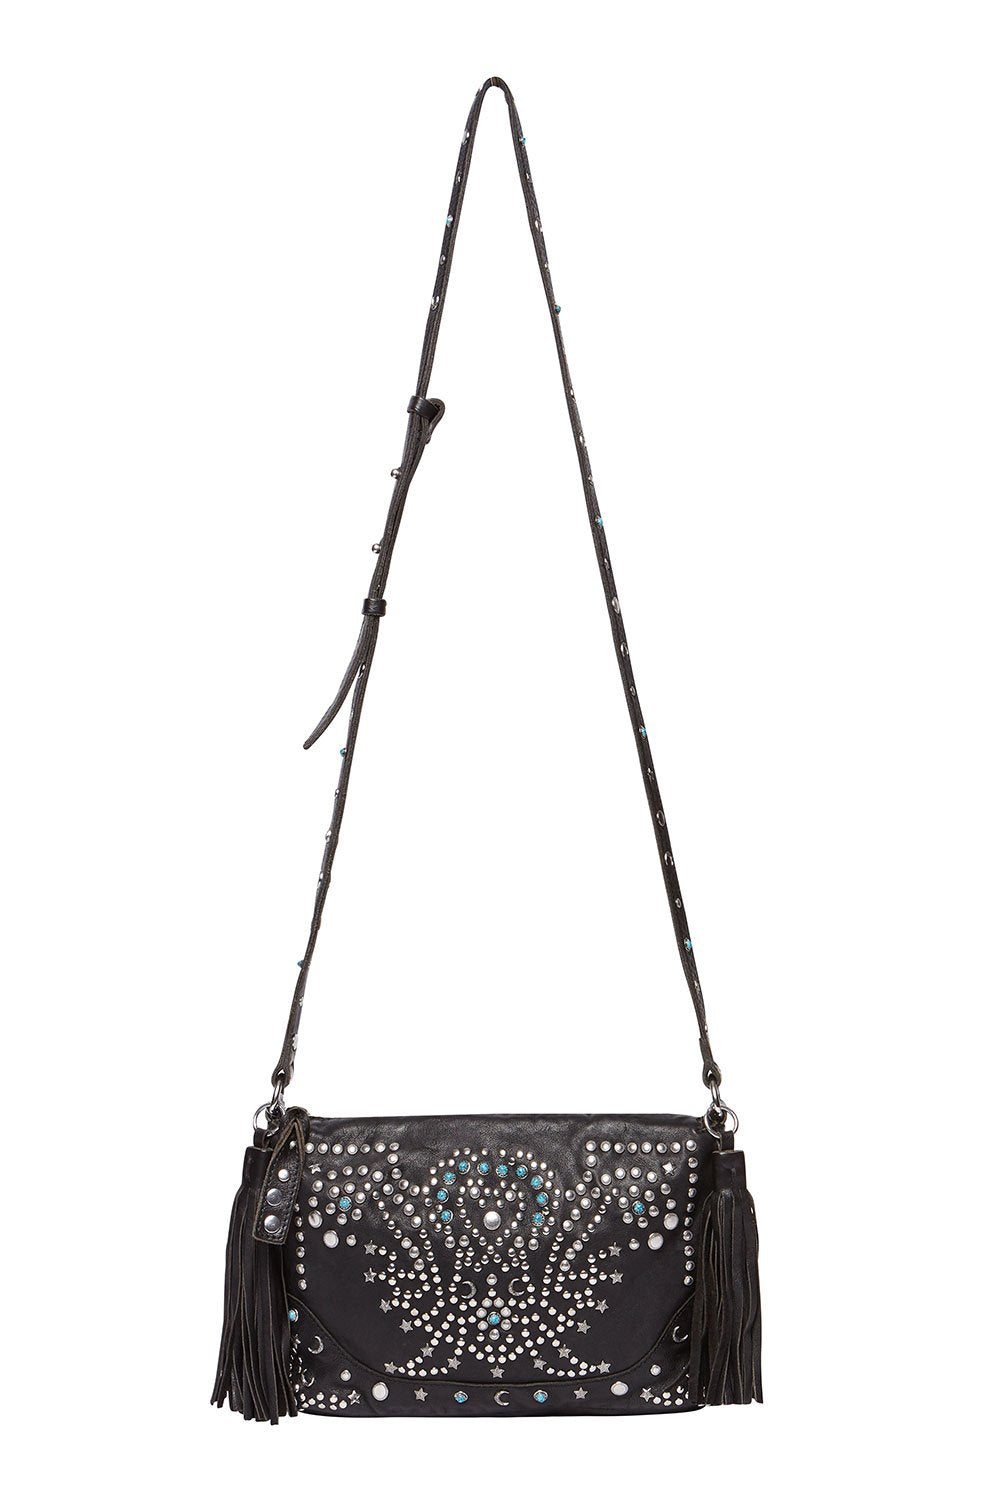 BOHEMIAN LEATHER BAG BLACK